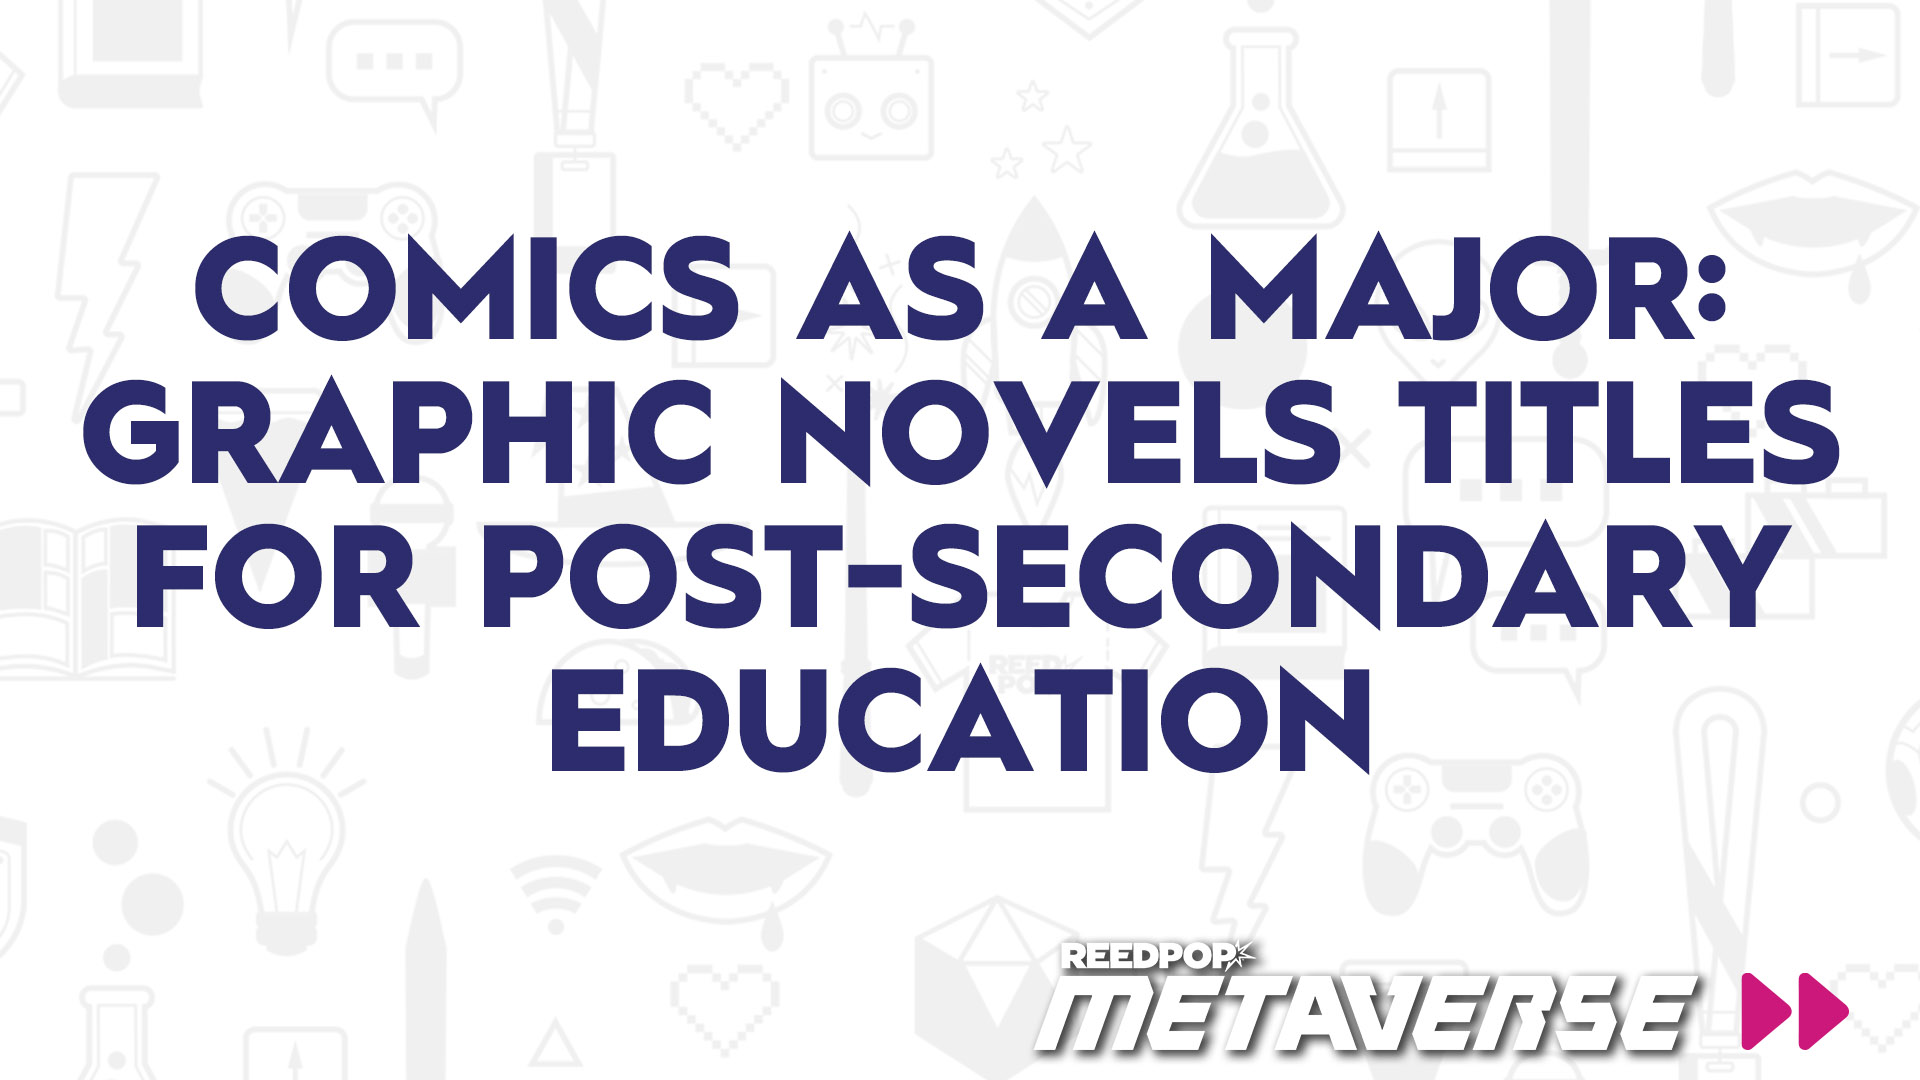 Image for Comics as a Major: Graphic Novels titles for Post-Secondary Education